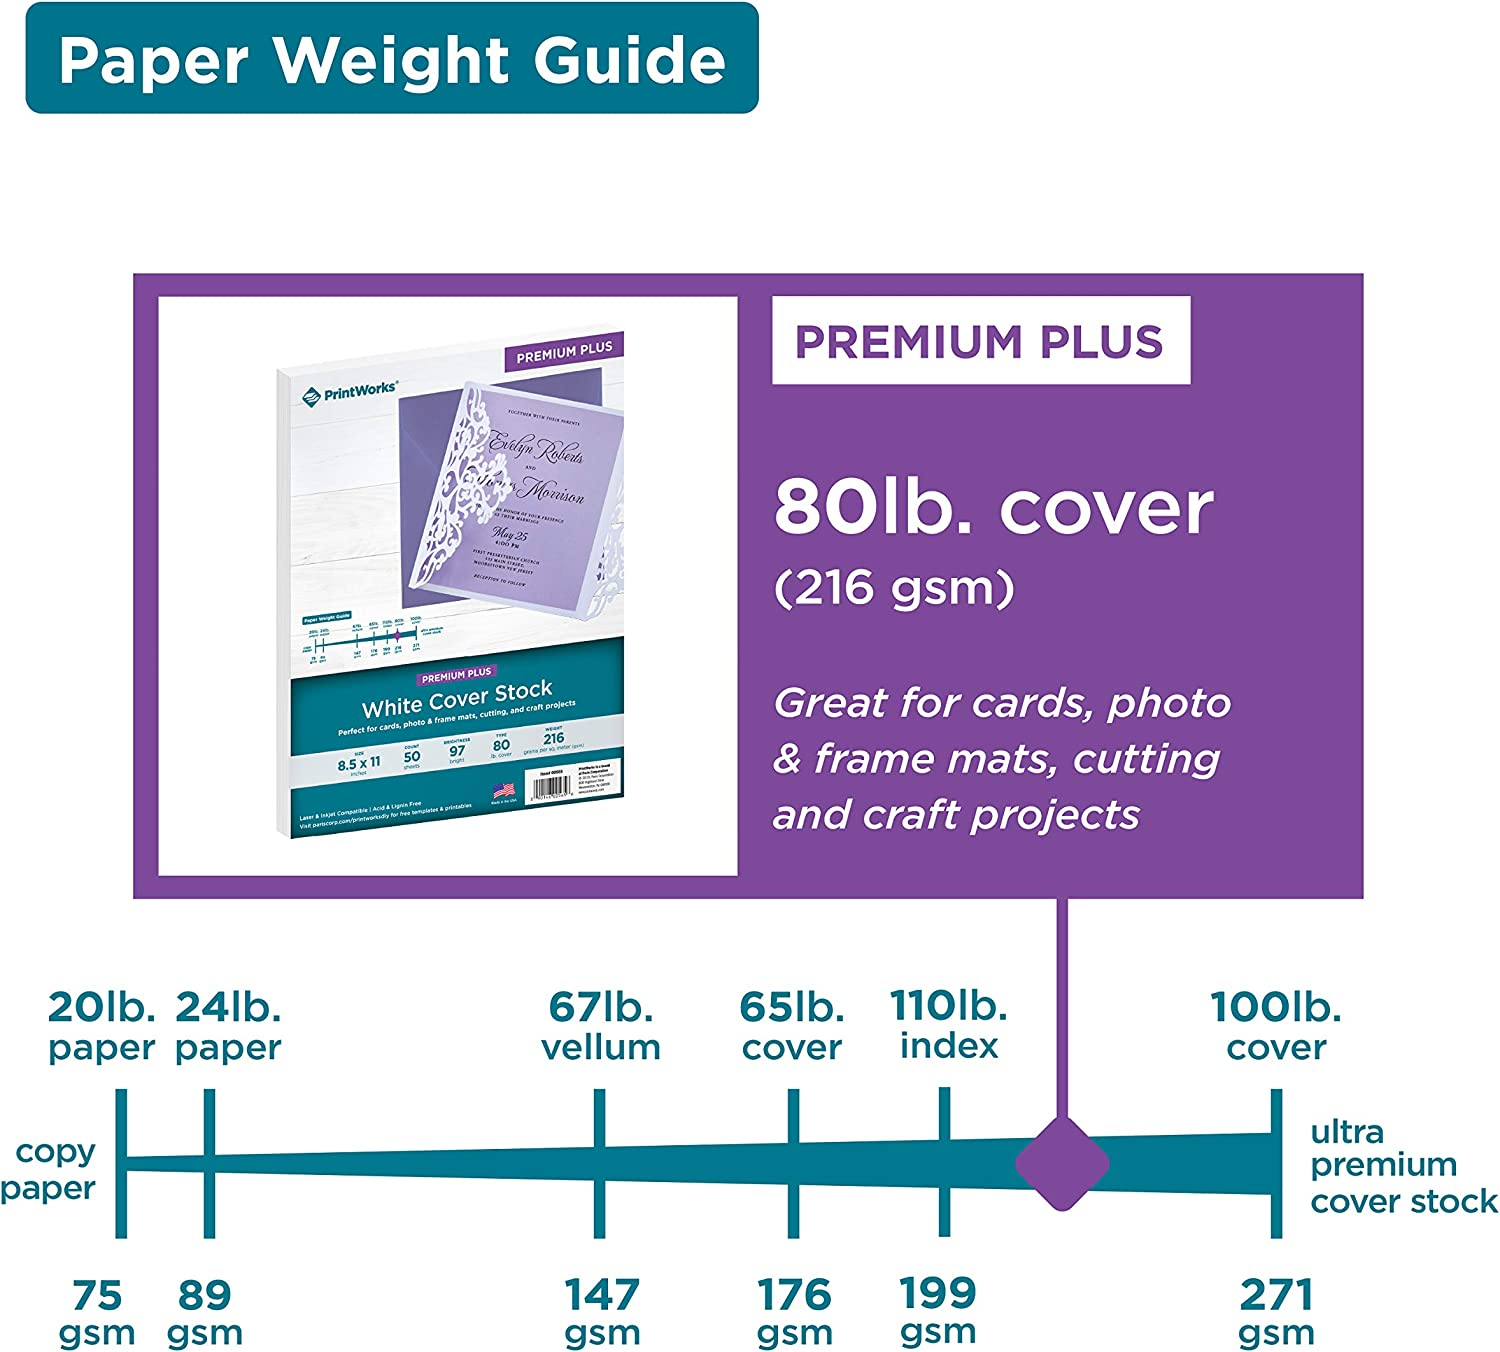 00566 8.5 x 11 97 Bright Ultra Premium 100 lb Cutting Cover Photo /& Frame Mats 50 Sheets Printworks White Cover Stock and Craft Projects For Cards